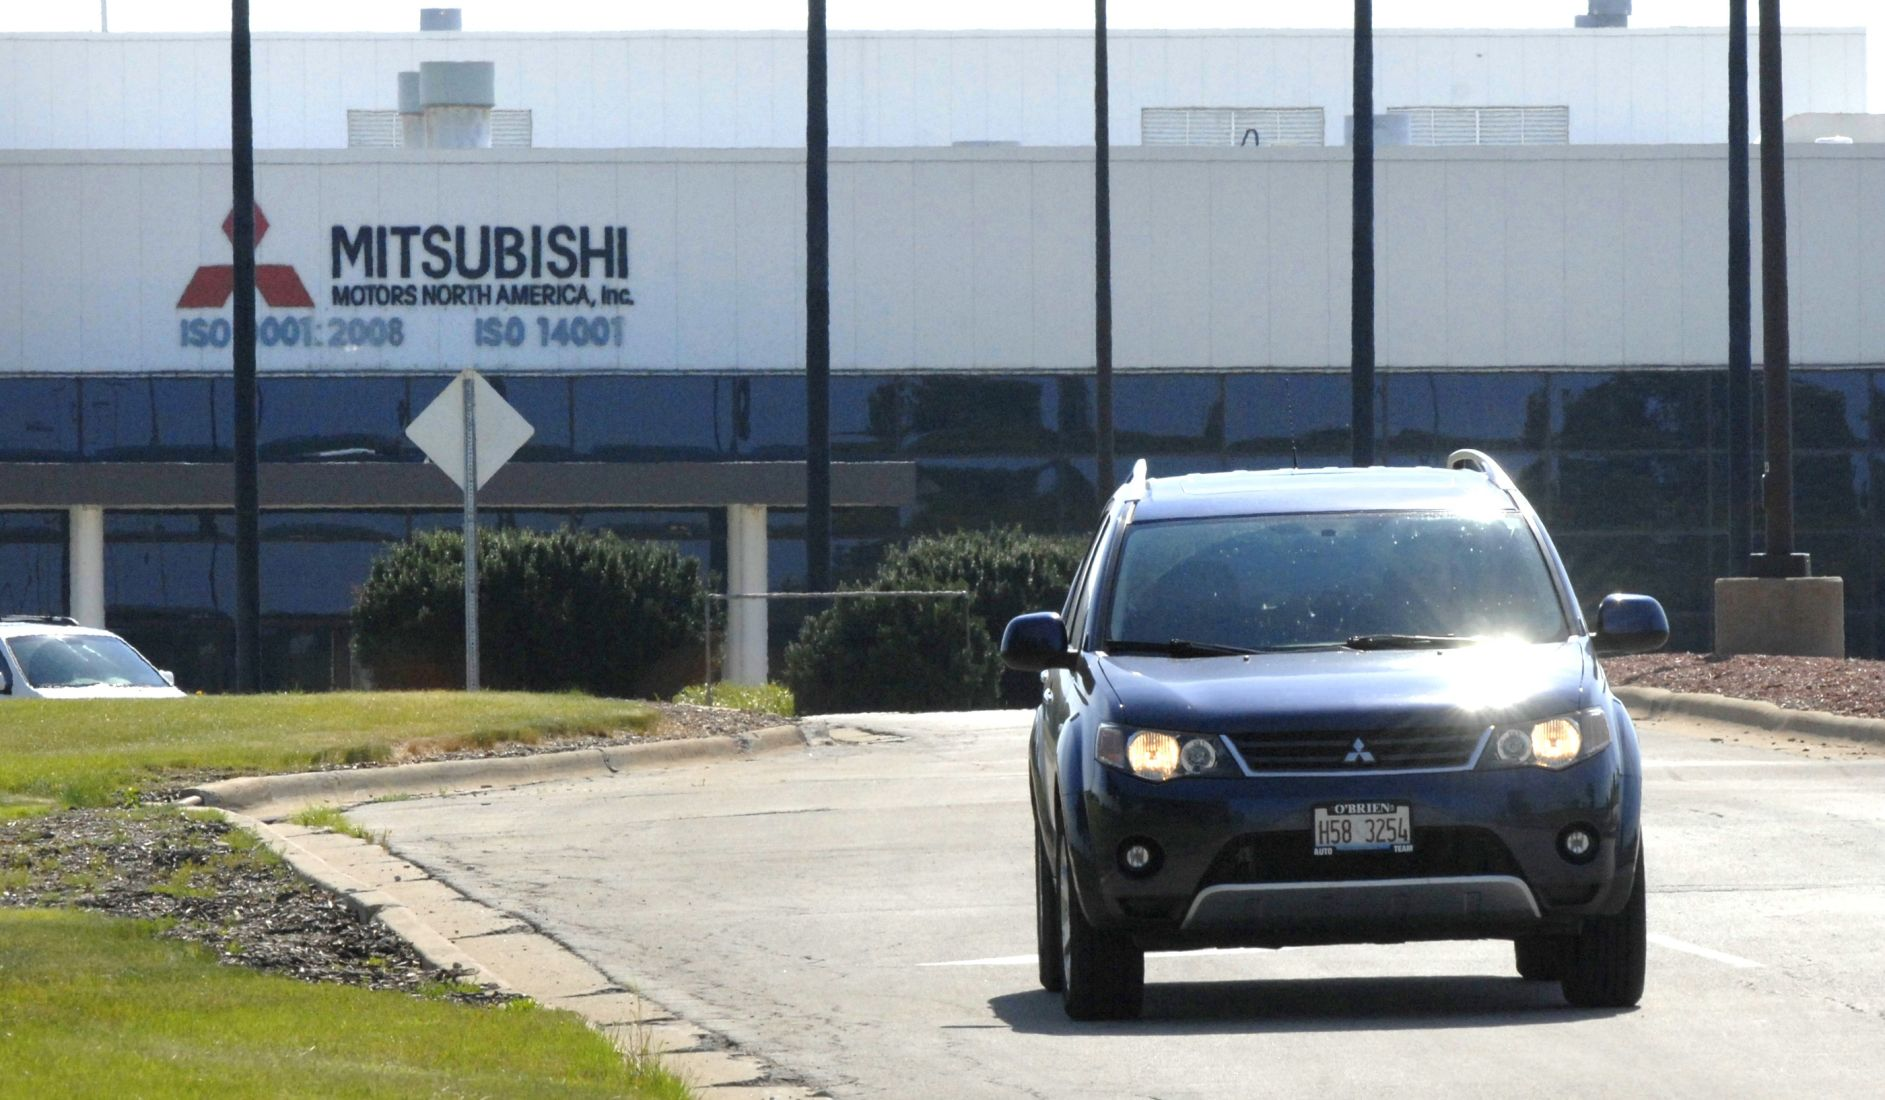 Japanese Automaker Mitsubishi Motors To Halt US Production